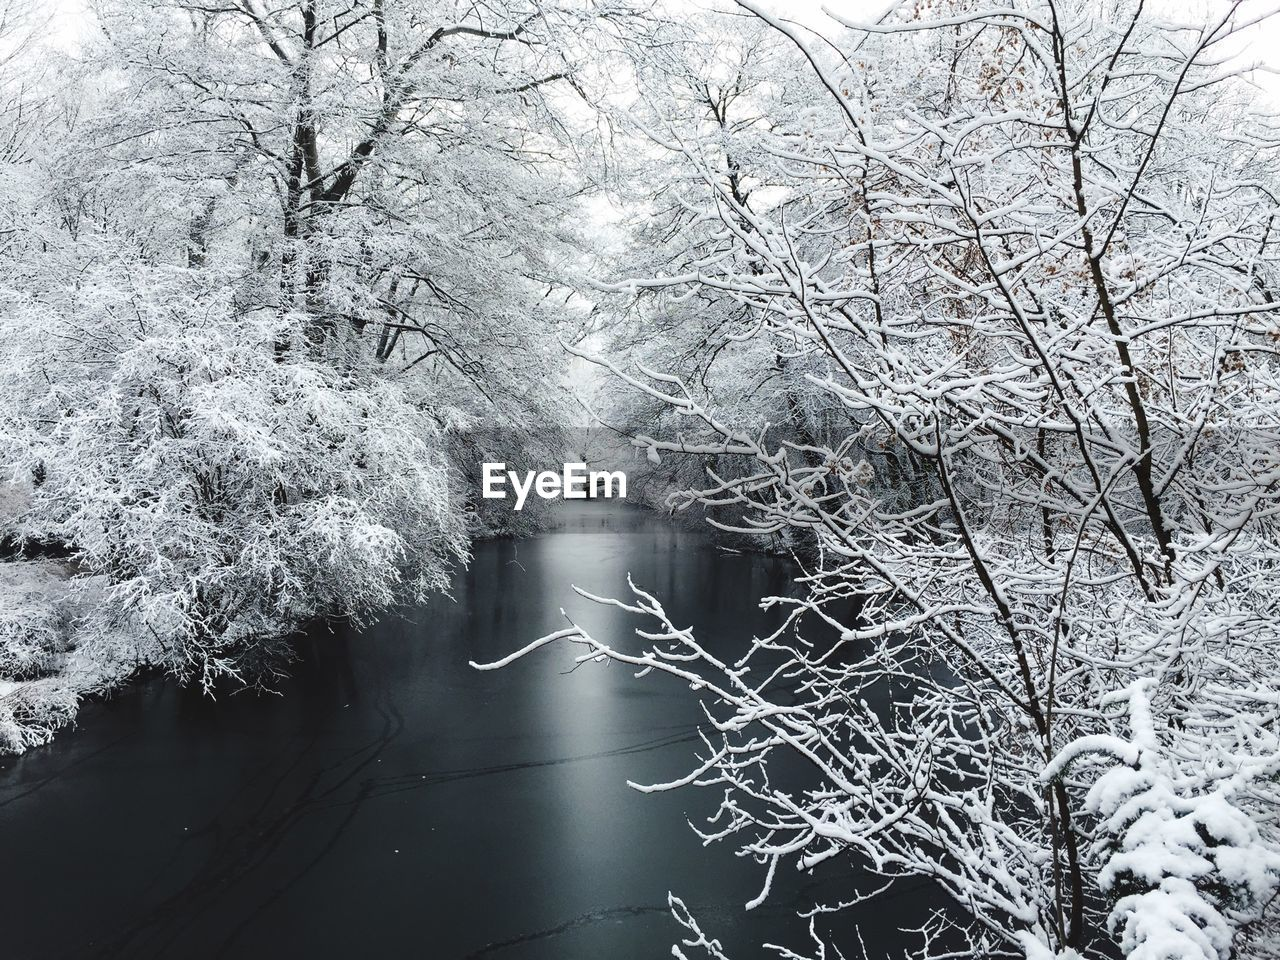 winter, cold temperature, nature, tree, branch, bare tree, no people, beauty in nature, snow, outdoors, frozen, day, water, tranquility